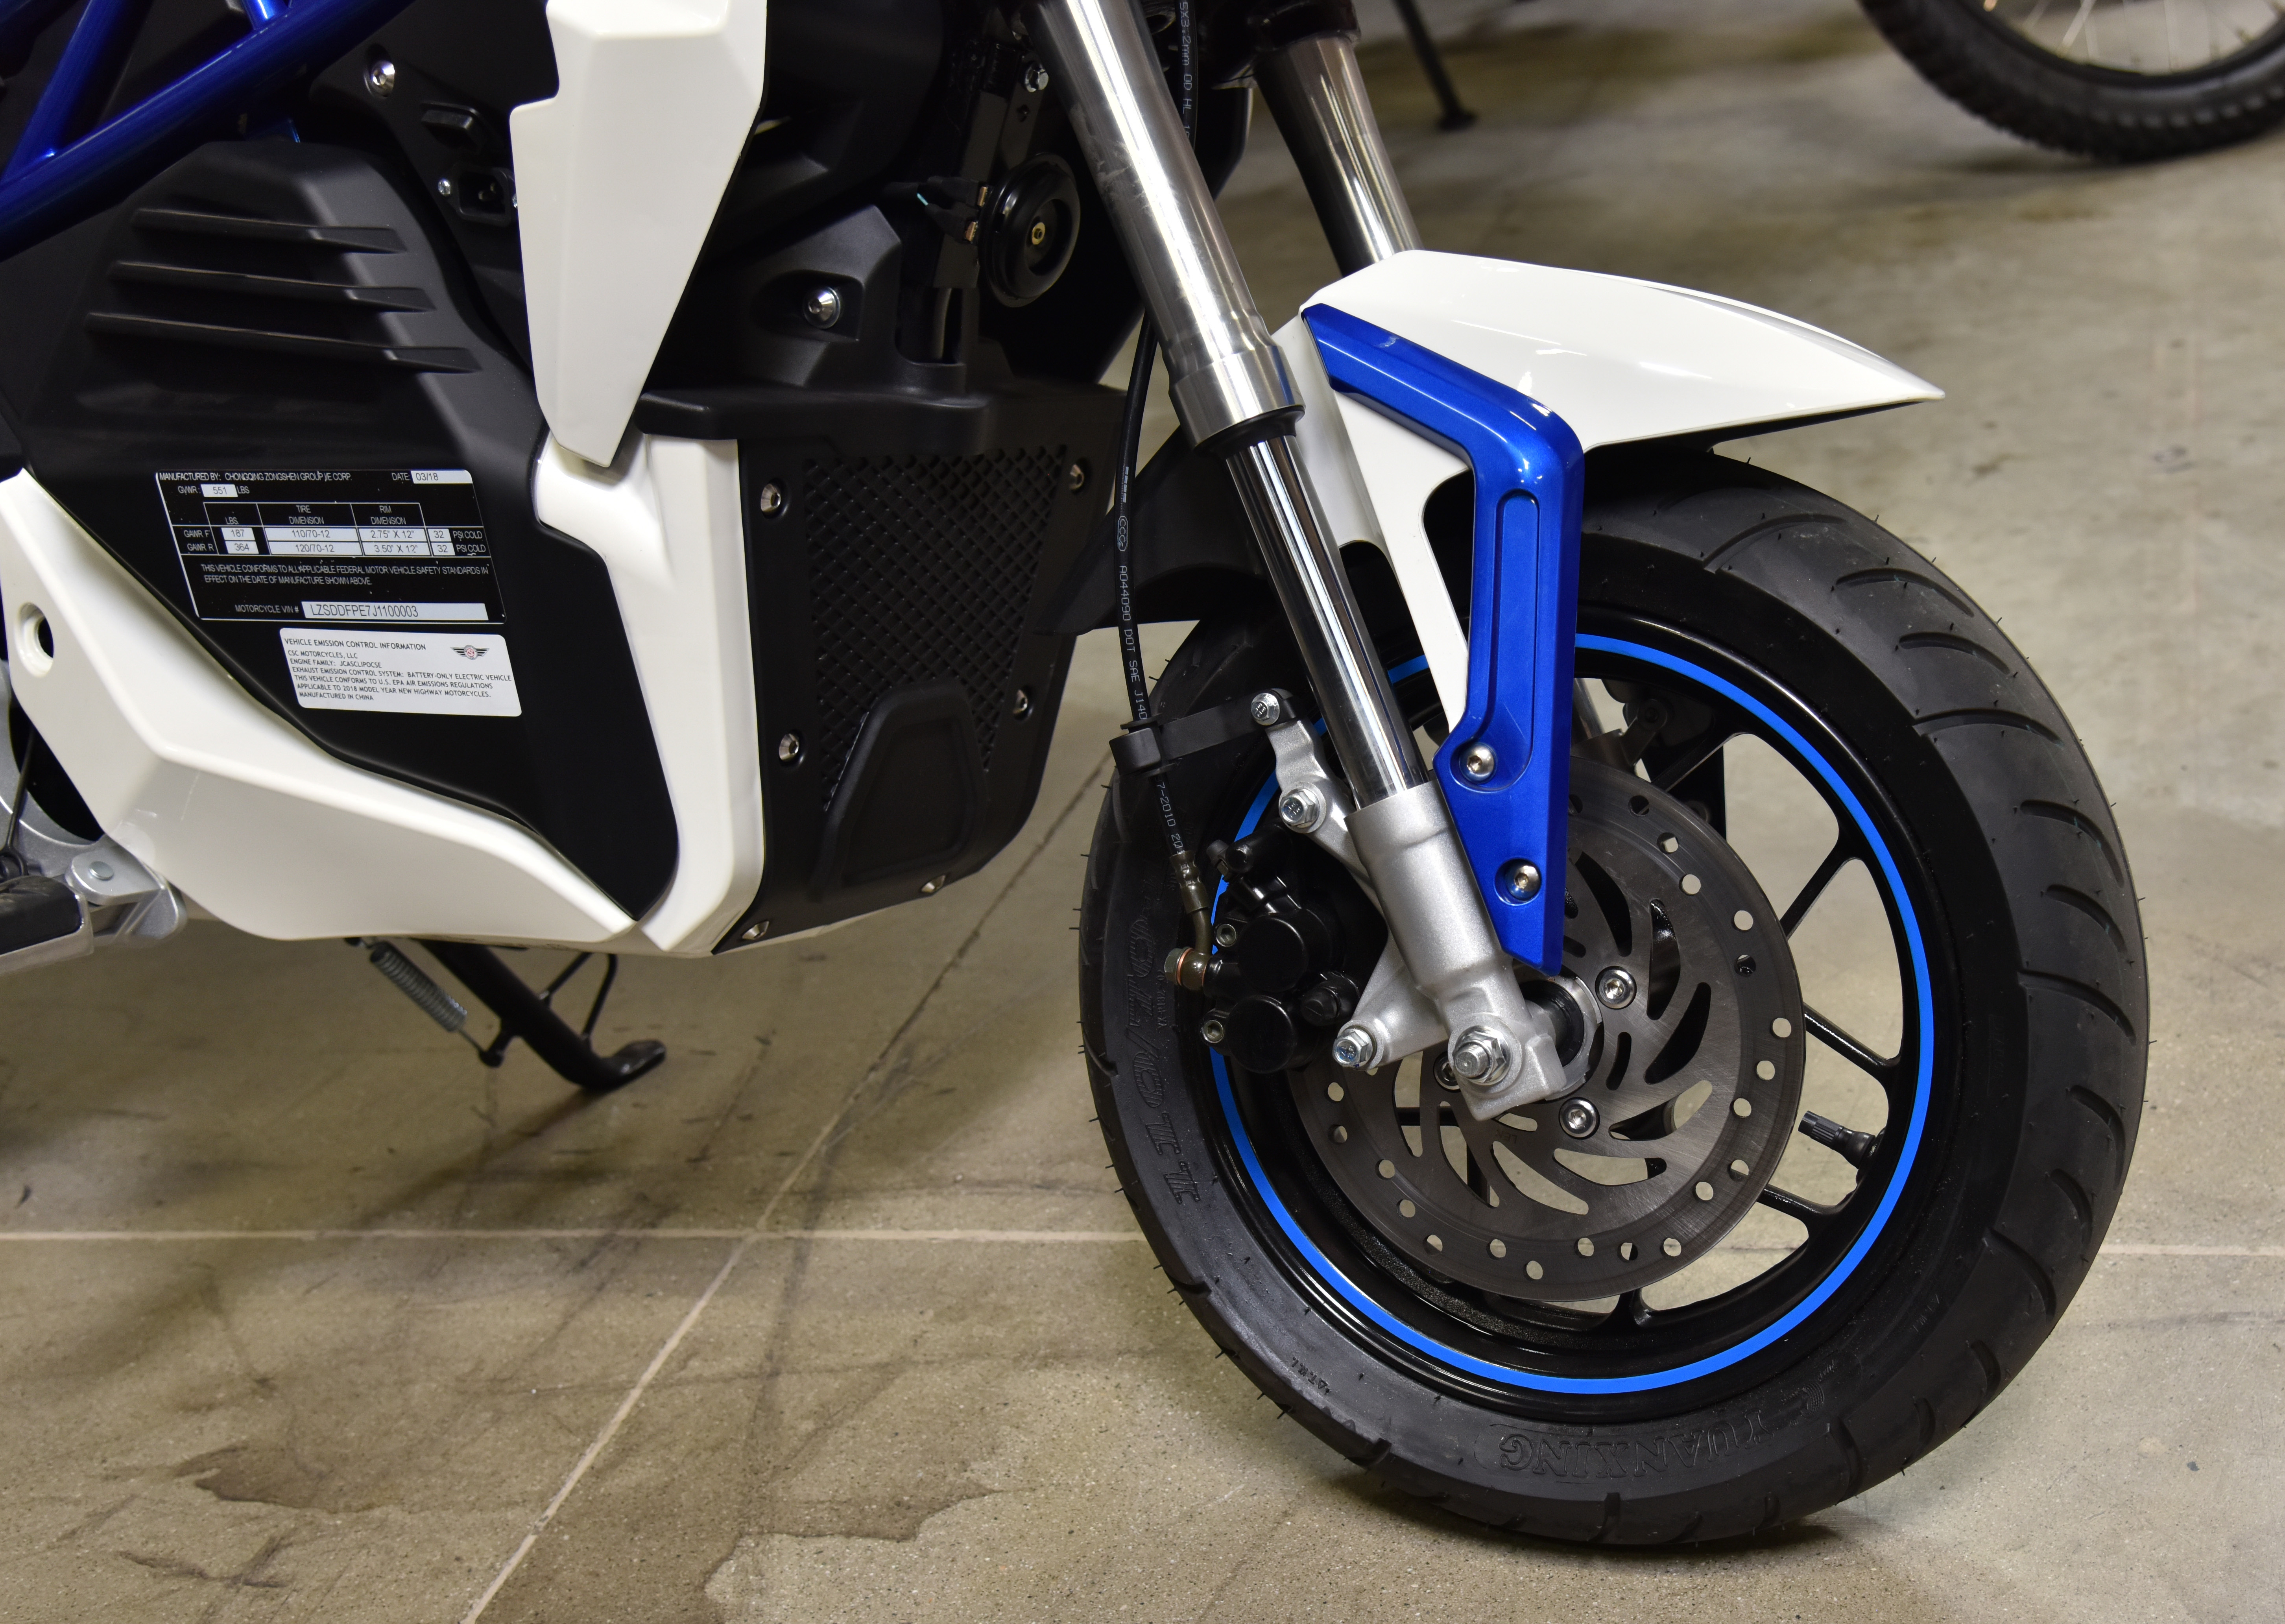 CSC introduces its first electric motorcycle, the City